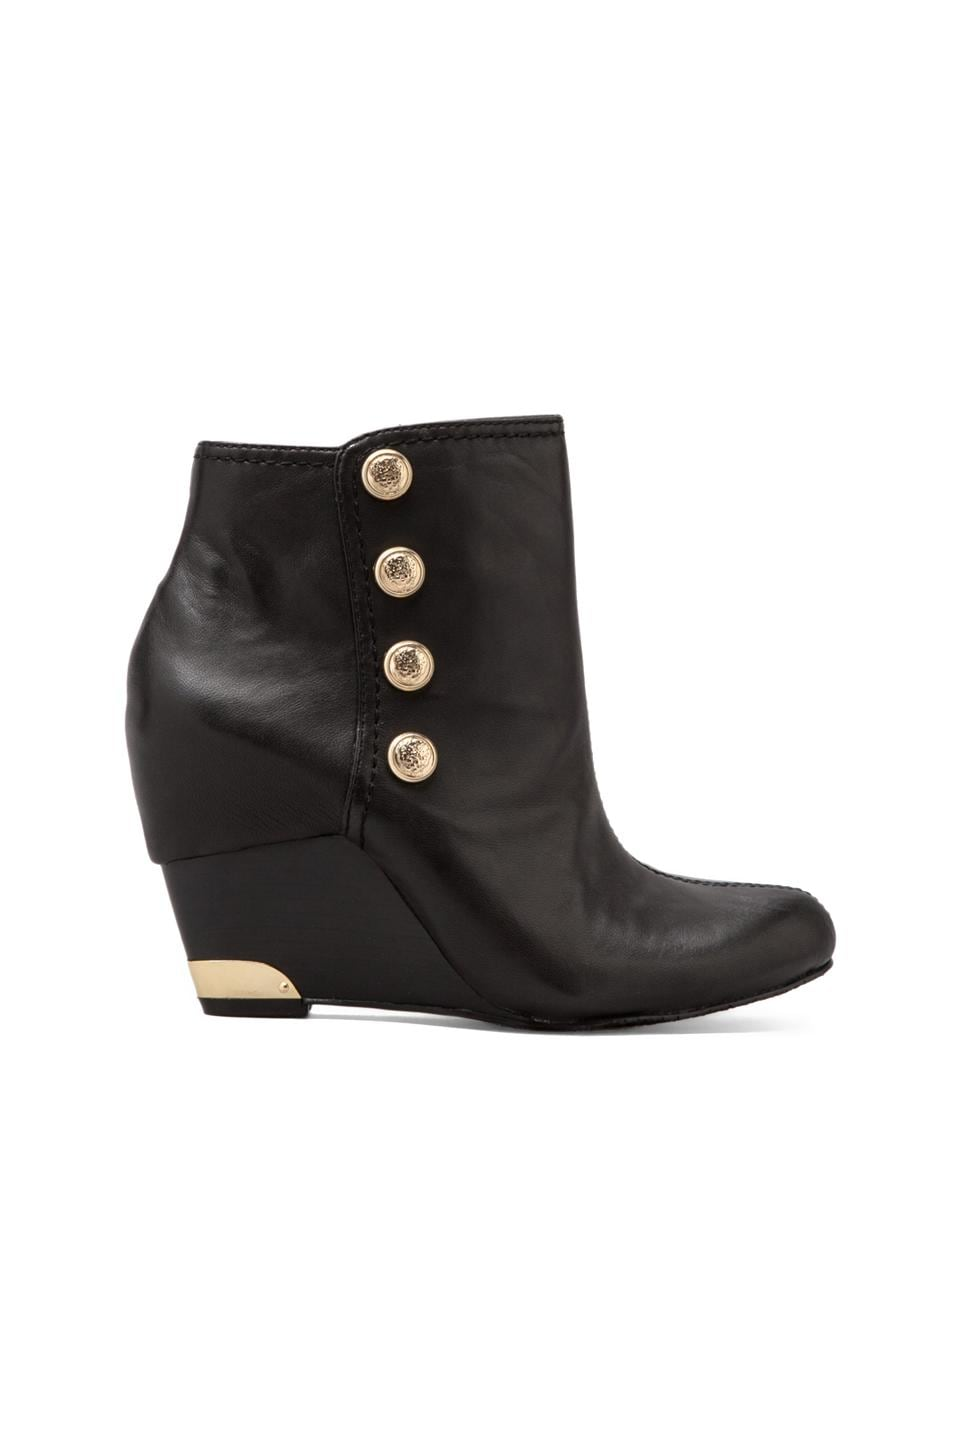 Vince Camuto Huxley Bootie in Black